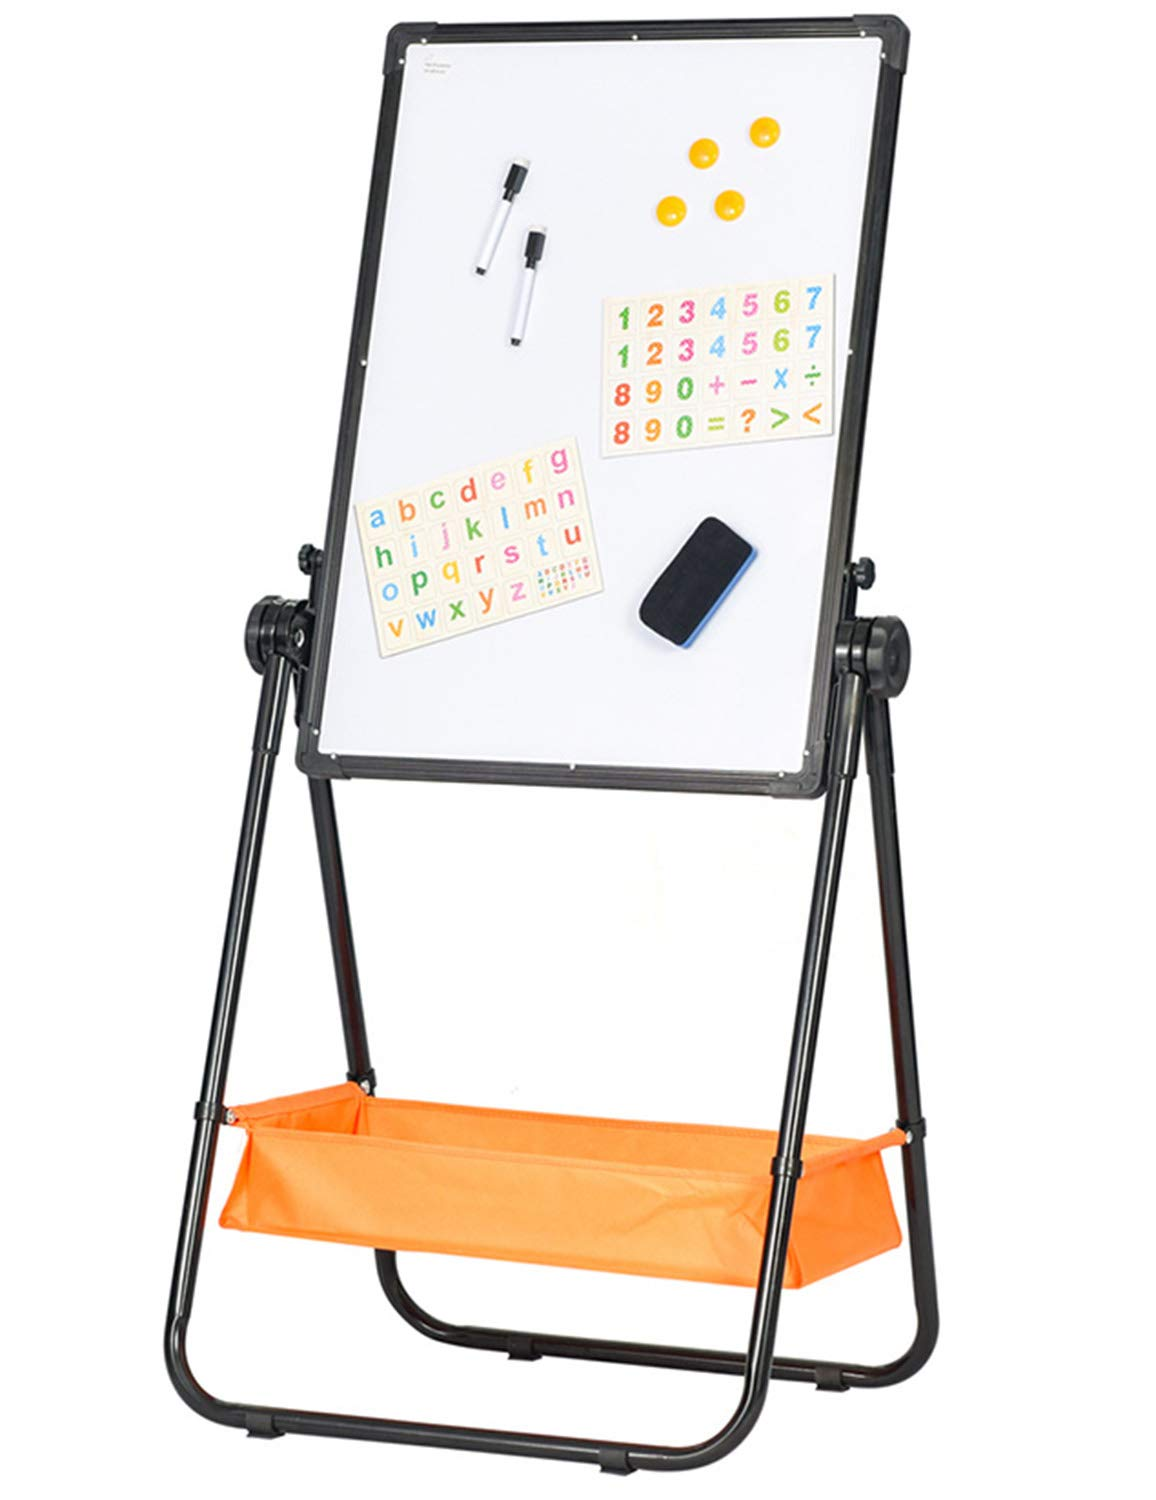 BuyHive Magnetic Kids Whiteboard U-Stand Dry Erase Mark Board Double Sided Office School Commertcial Use